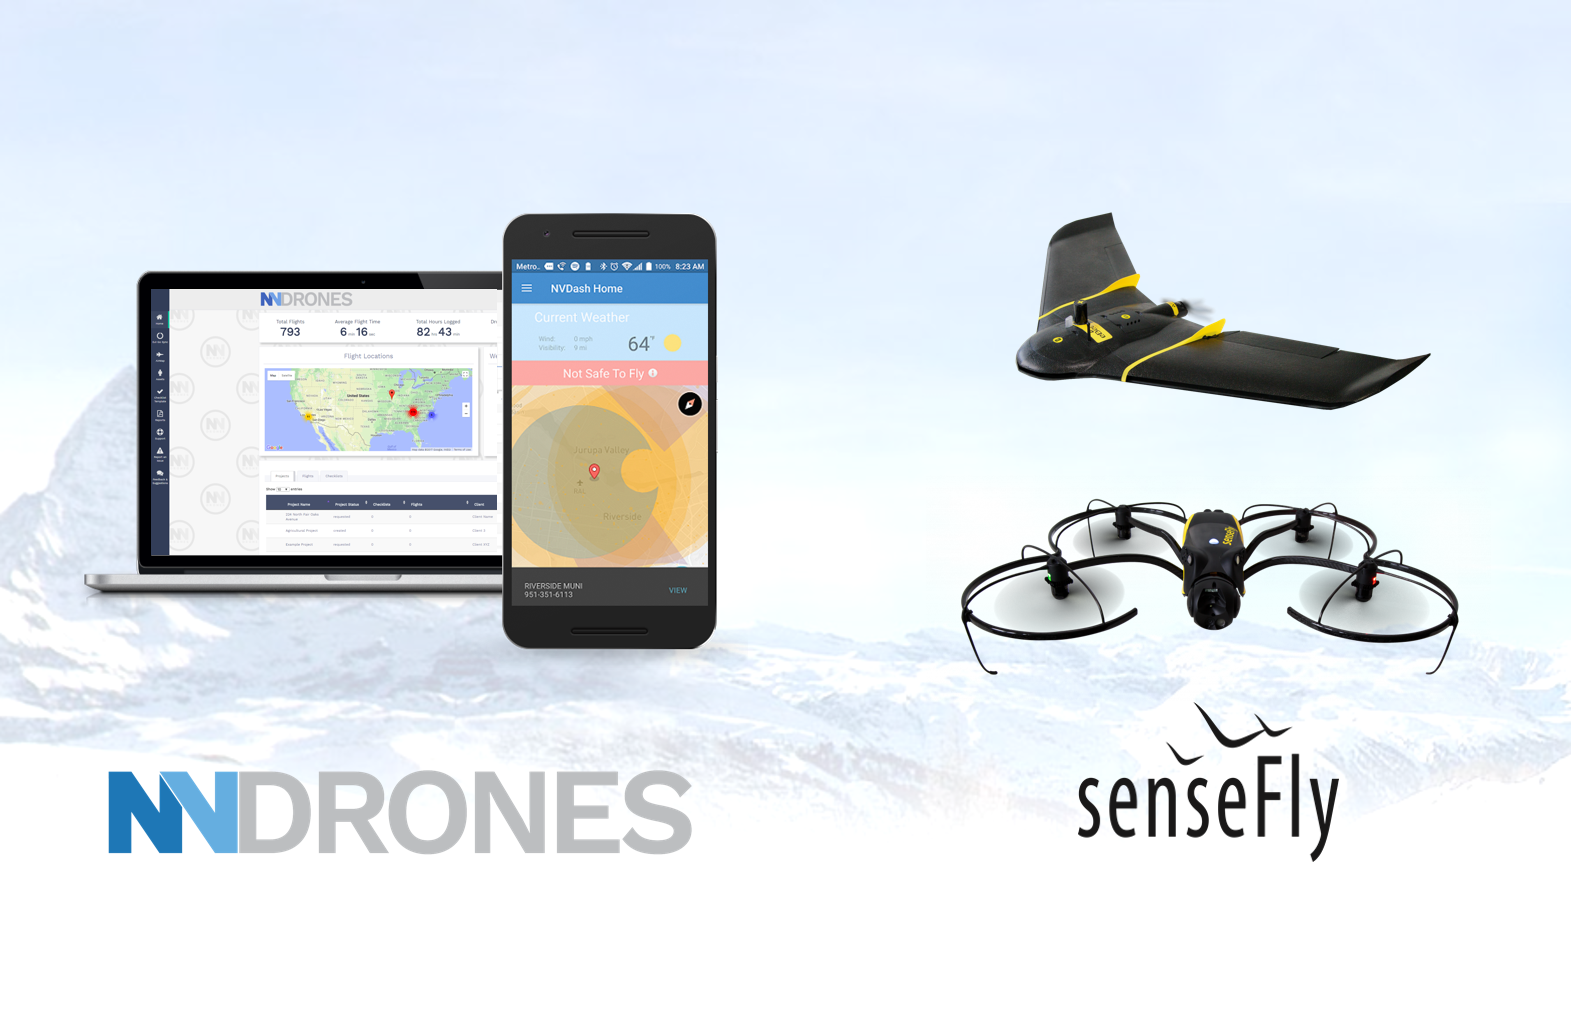 NVdrones Announces senseFly Compatibility and Product Pricing Plans